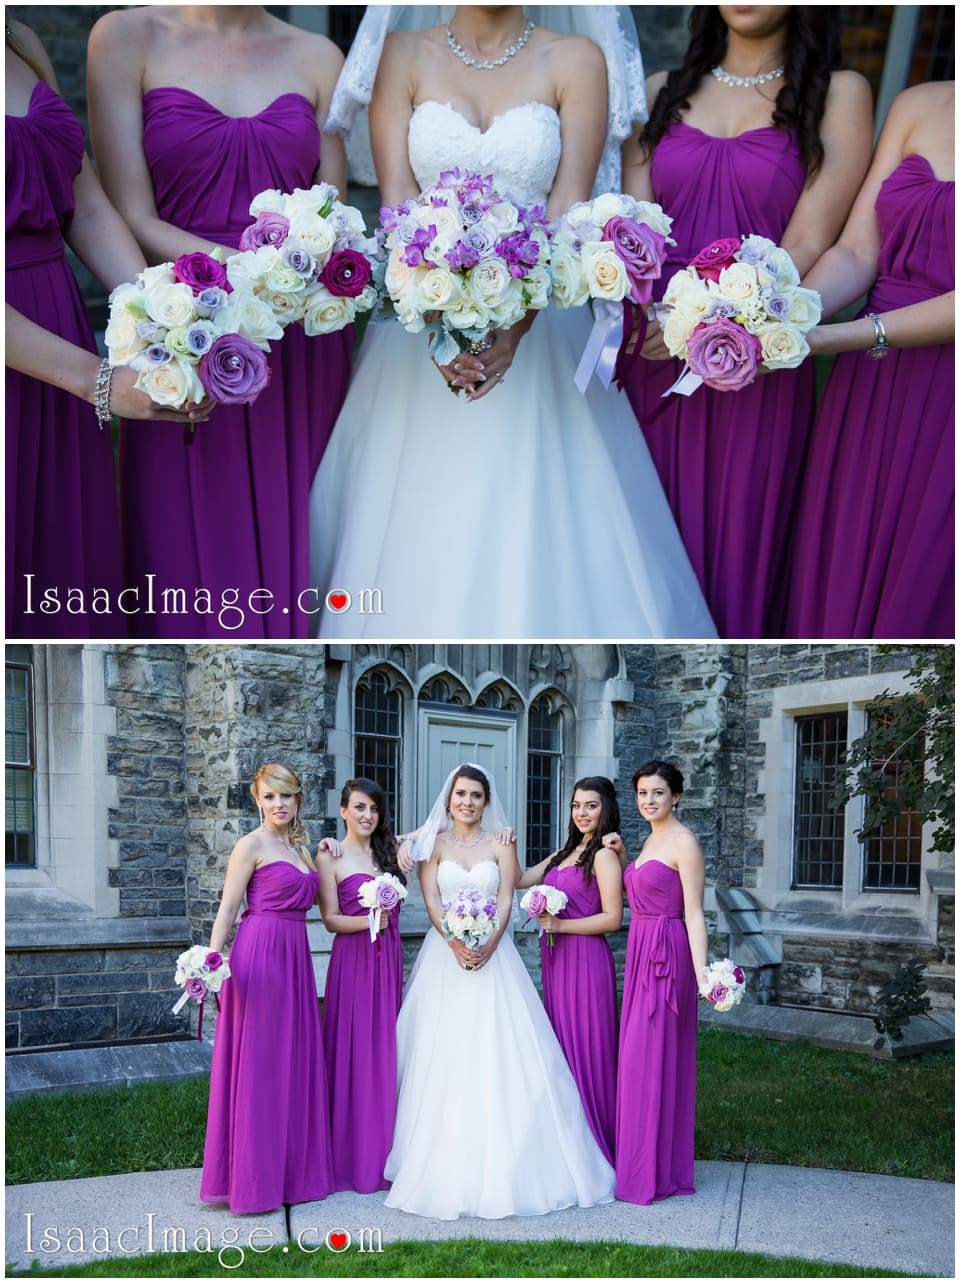 one king west Toronto Top Wedding Photographer_6900.jpg